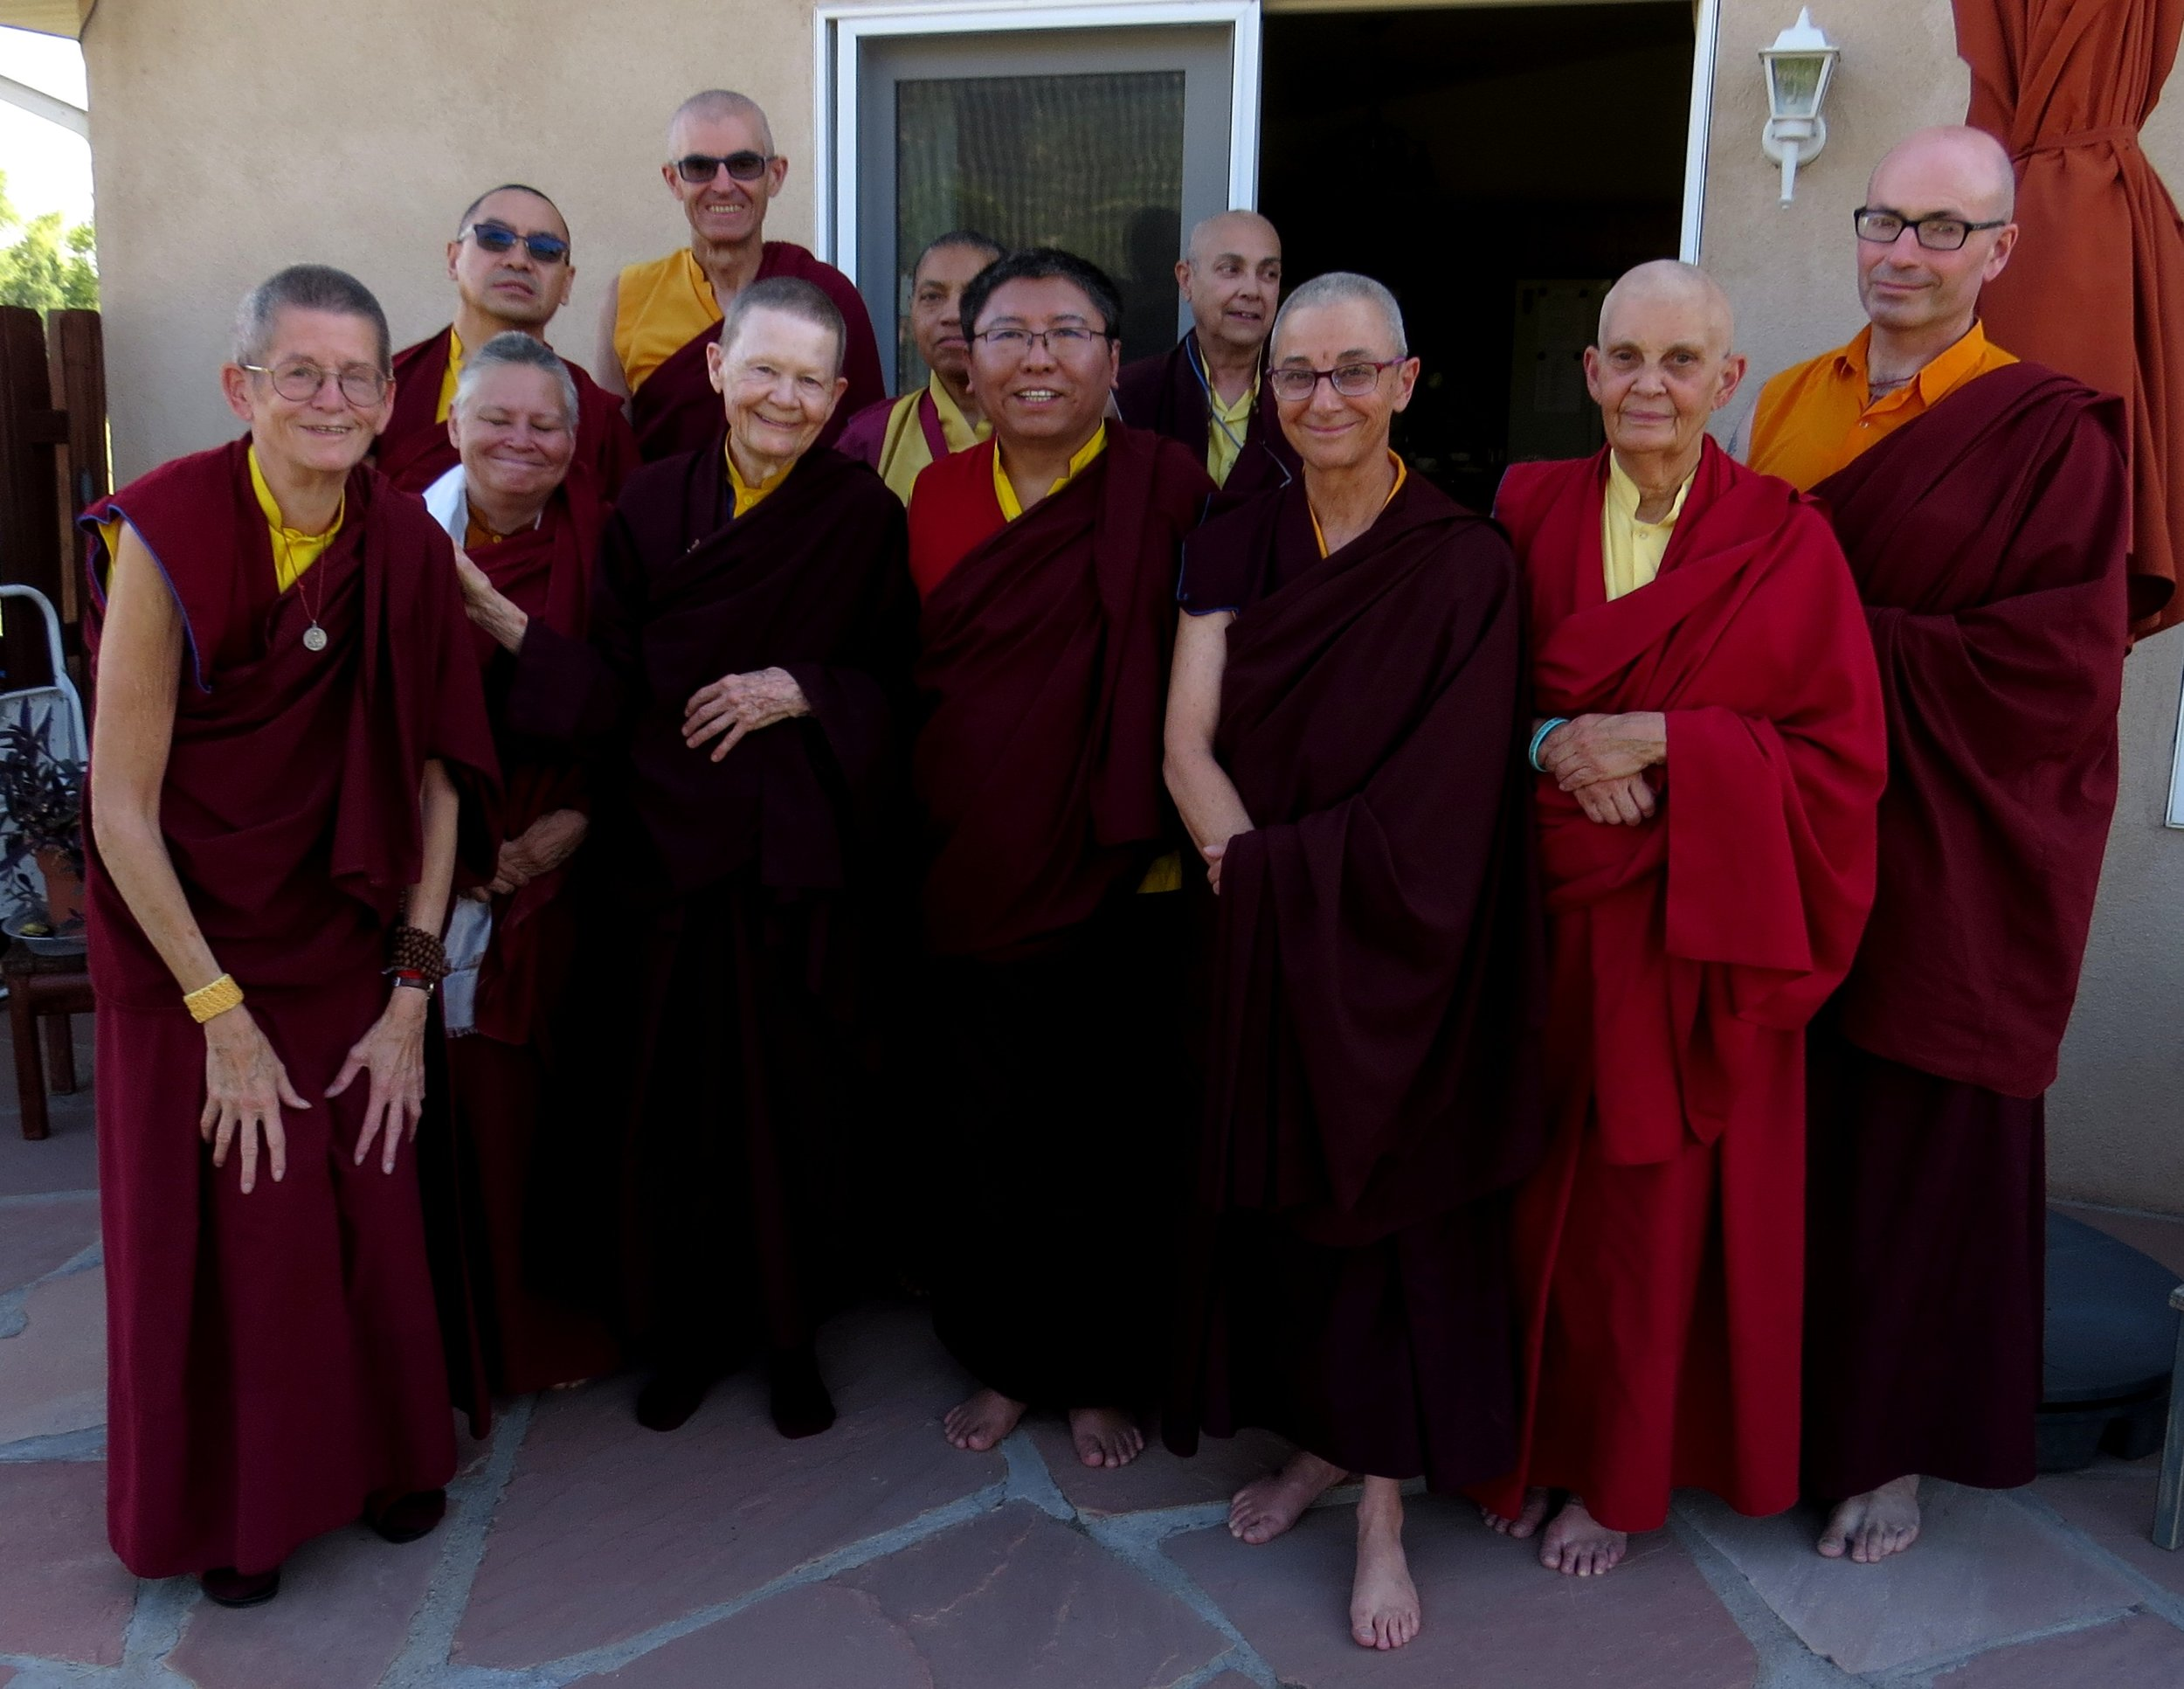 Local and visiting monastics gather after a very enjoyable and illuminating afternoon tea with Tsoknyi Rinpoche and Ven. Pema Chödrön.